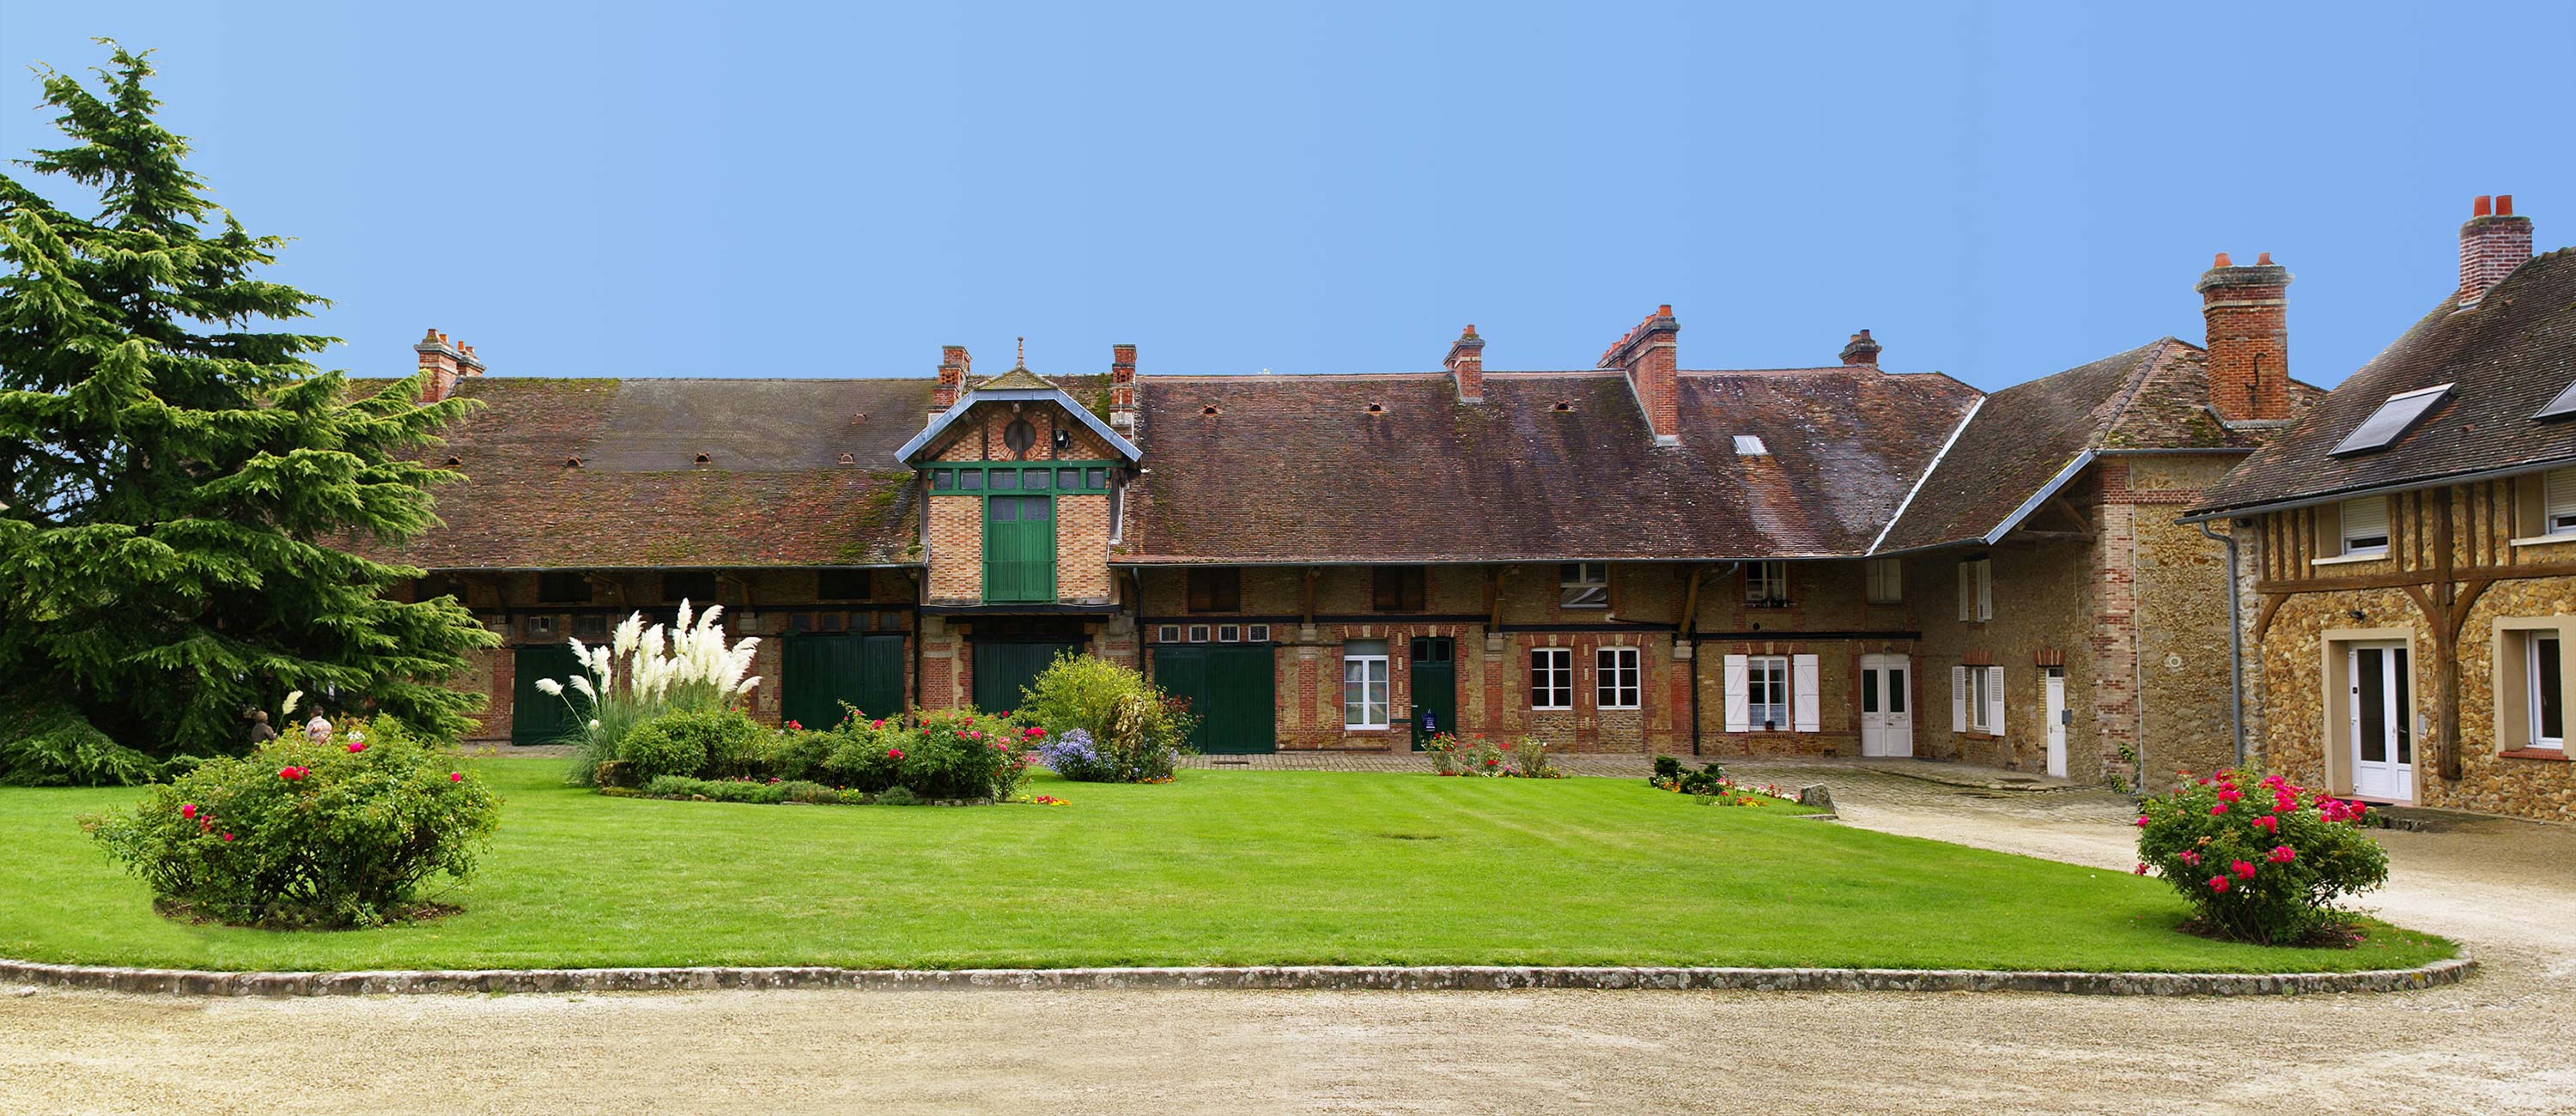 Location De Salles De Reception A La Ferme De Forest